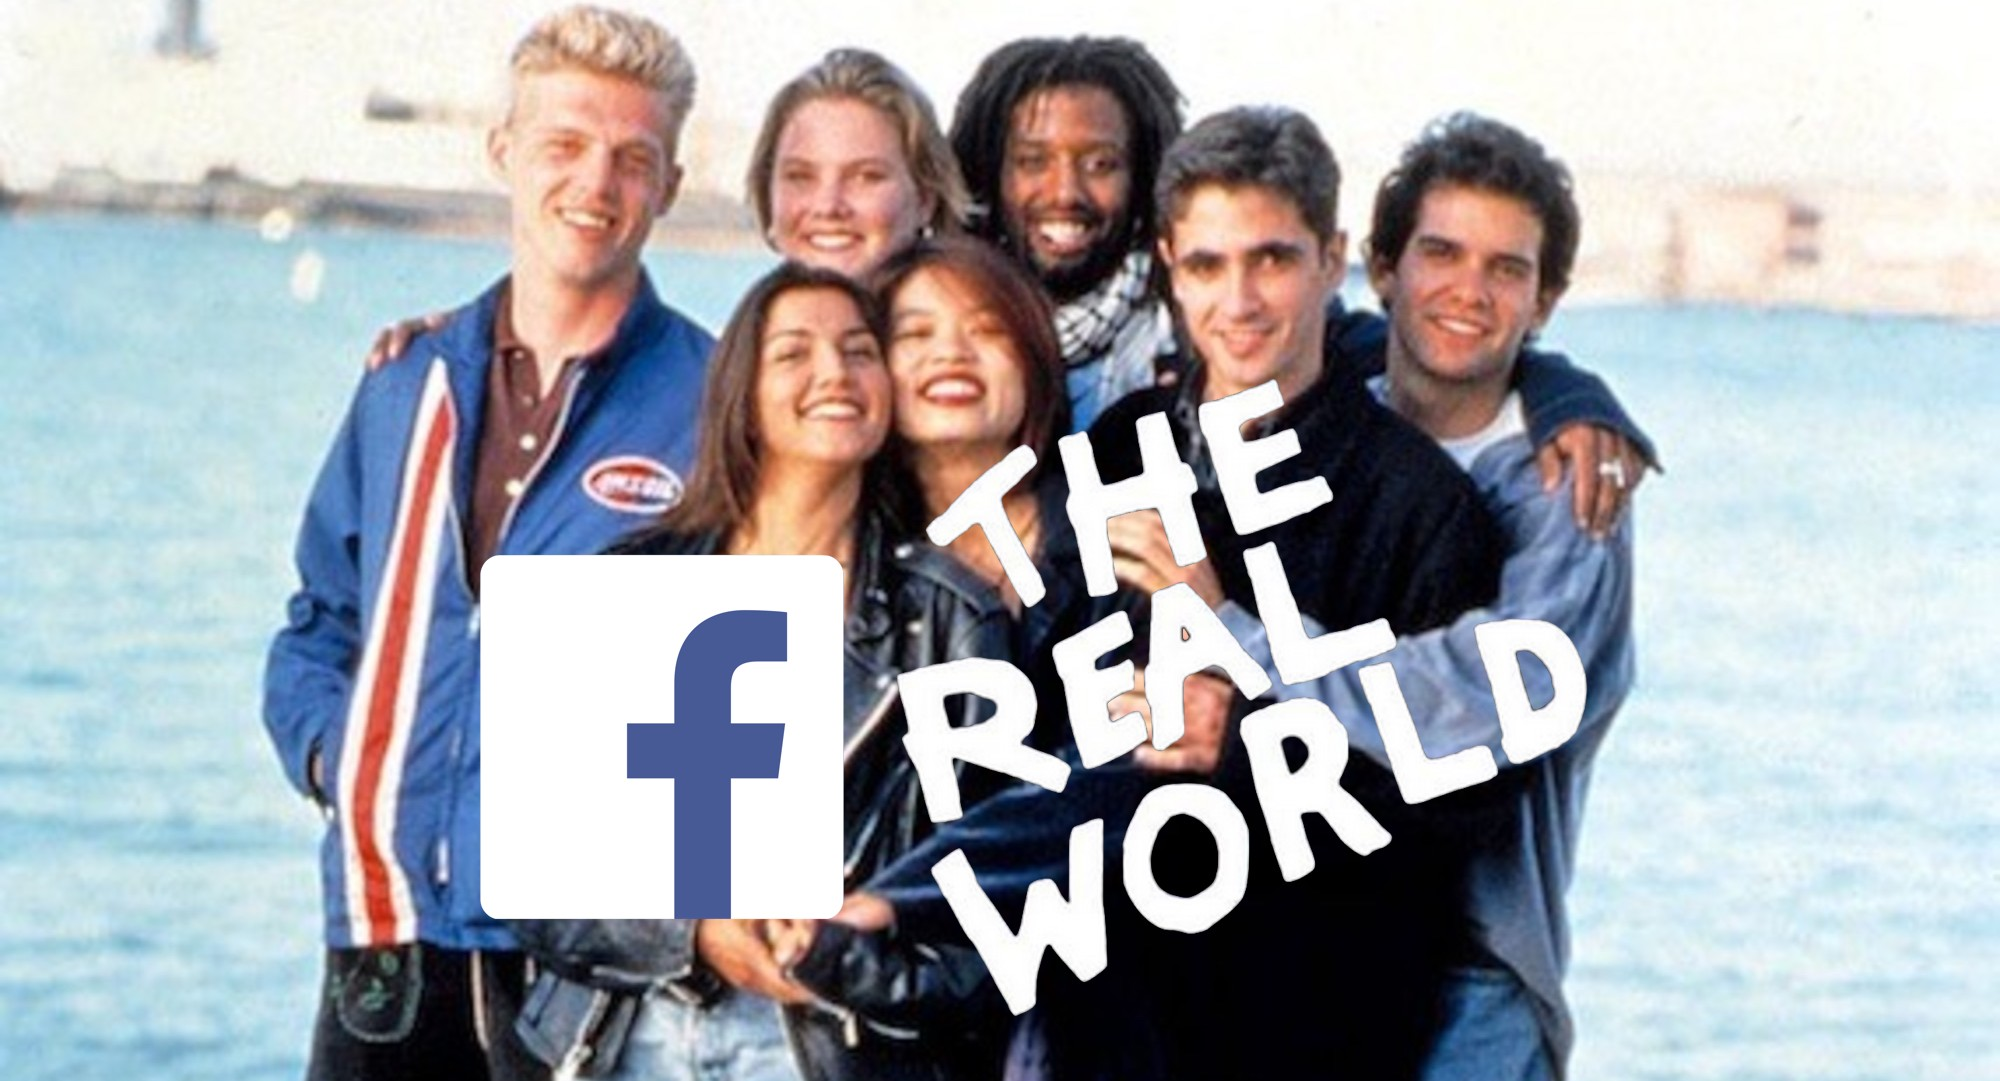 Mtv S Real World Will Be Revived With Interactivity On Facebook Watch Techcrunch